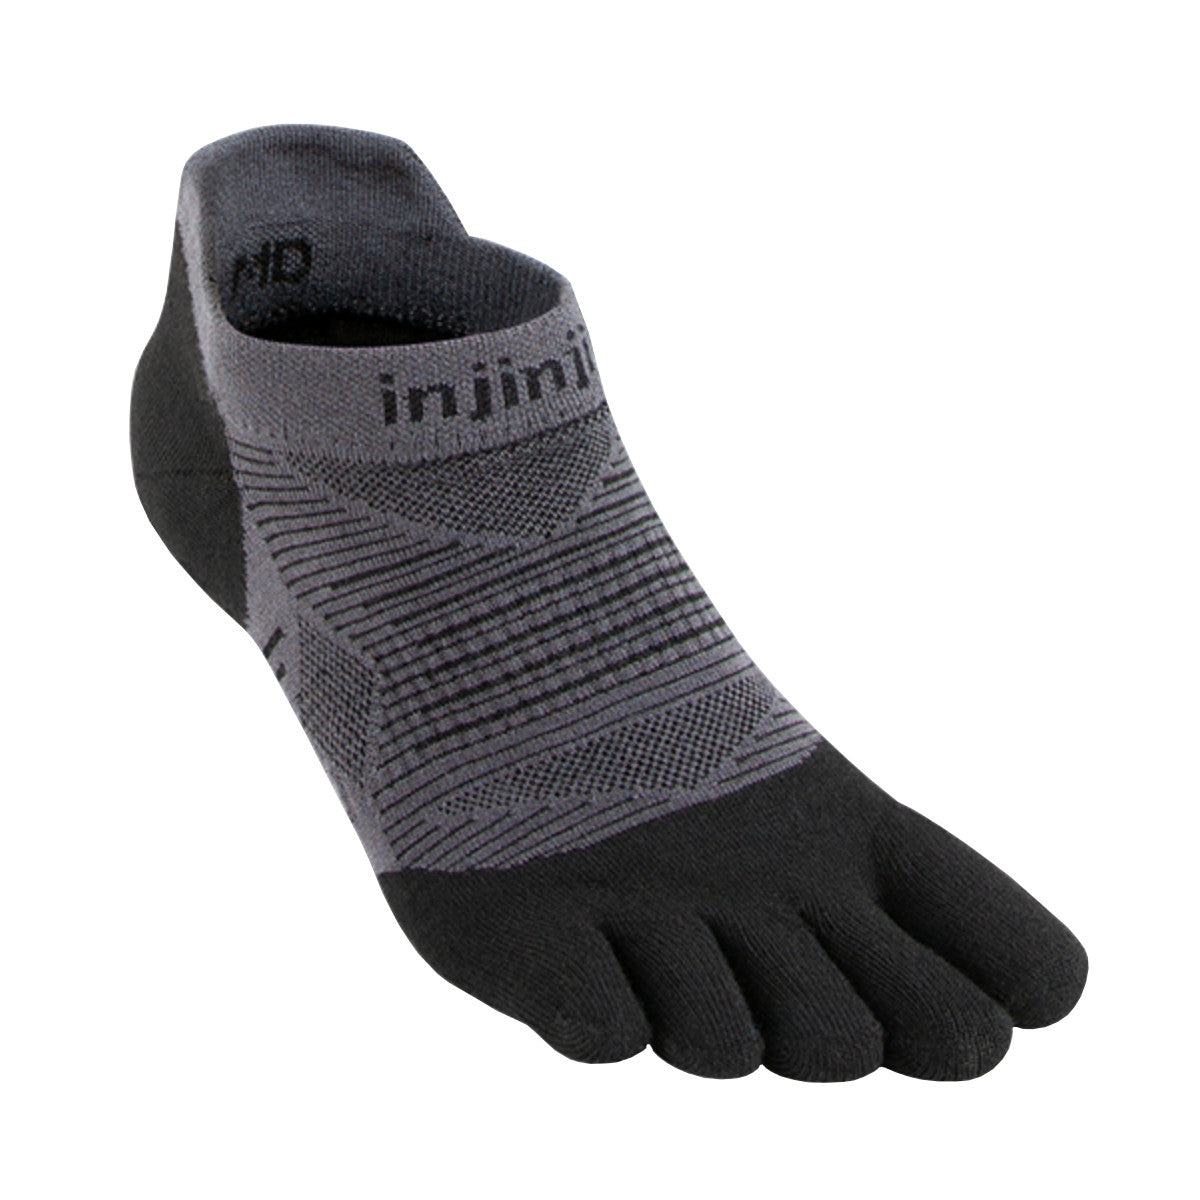 Injinji Run Lightweight No Show (Black)